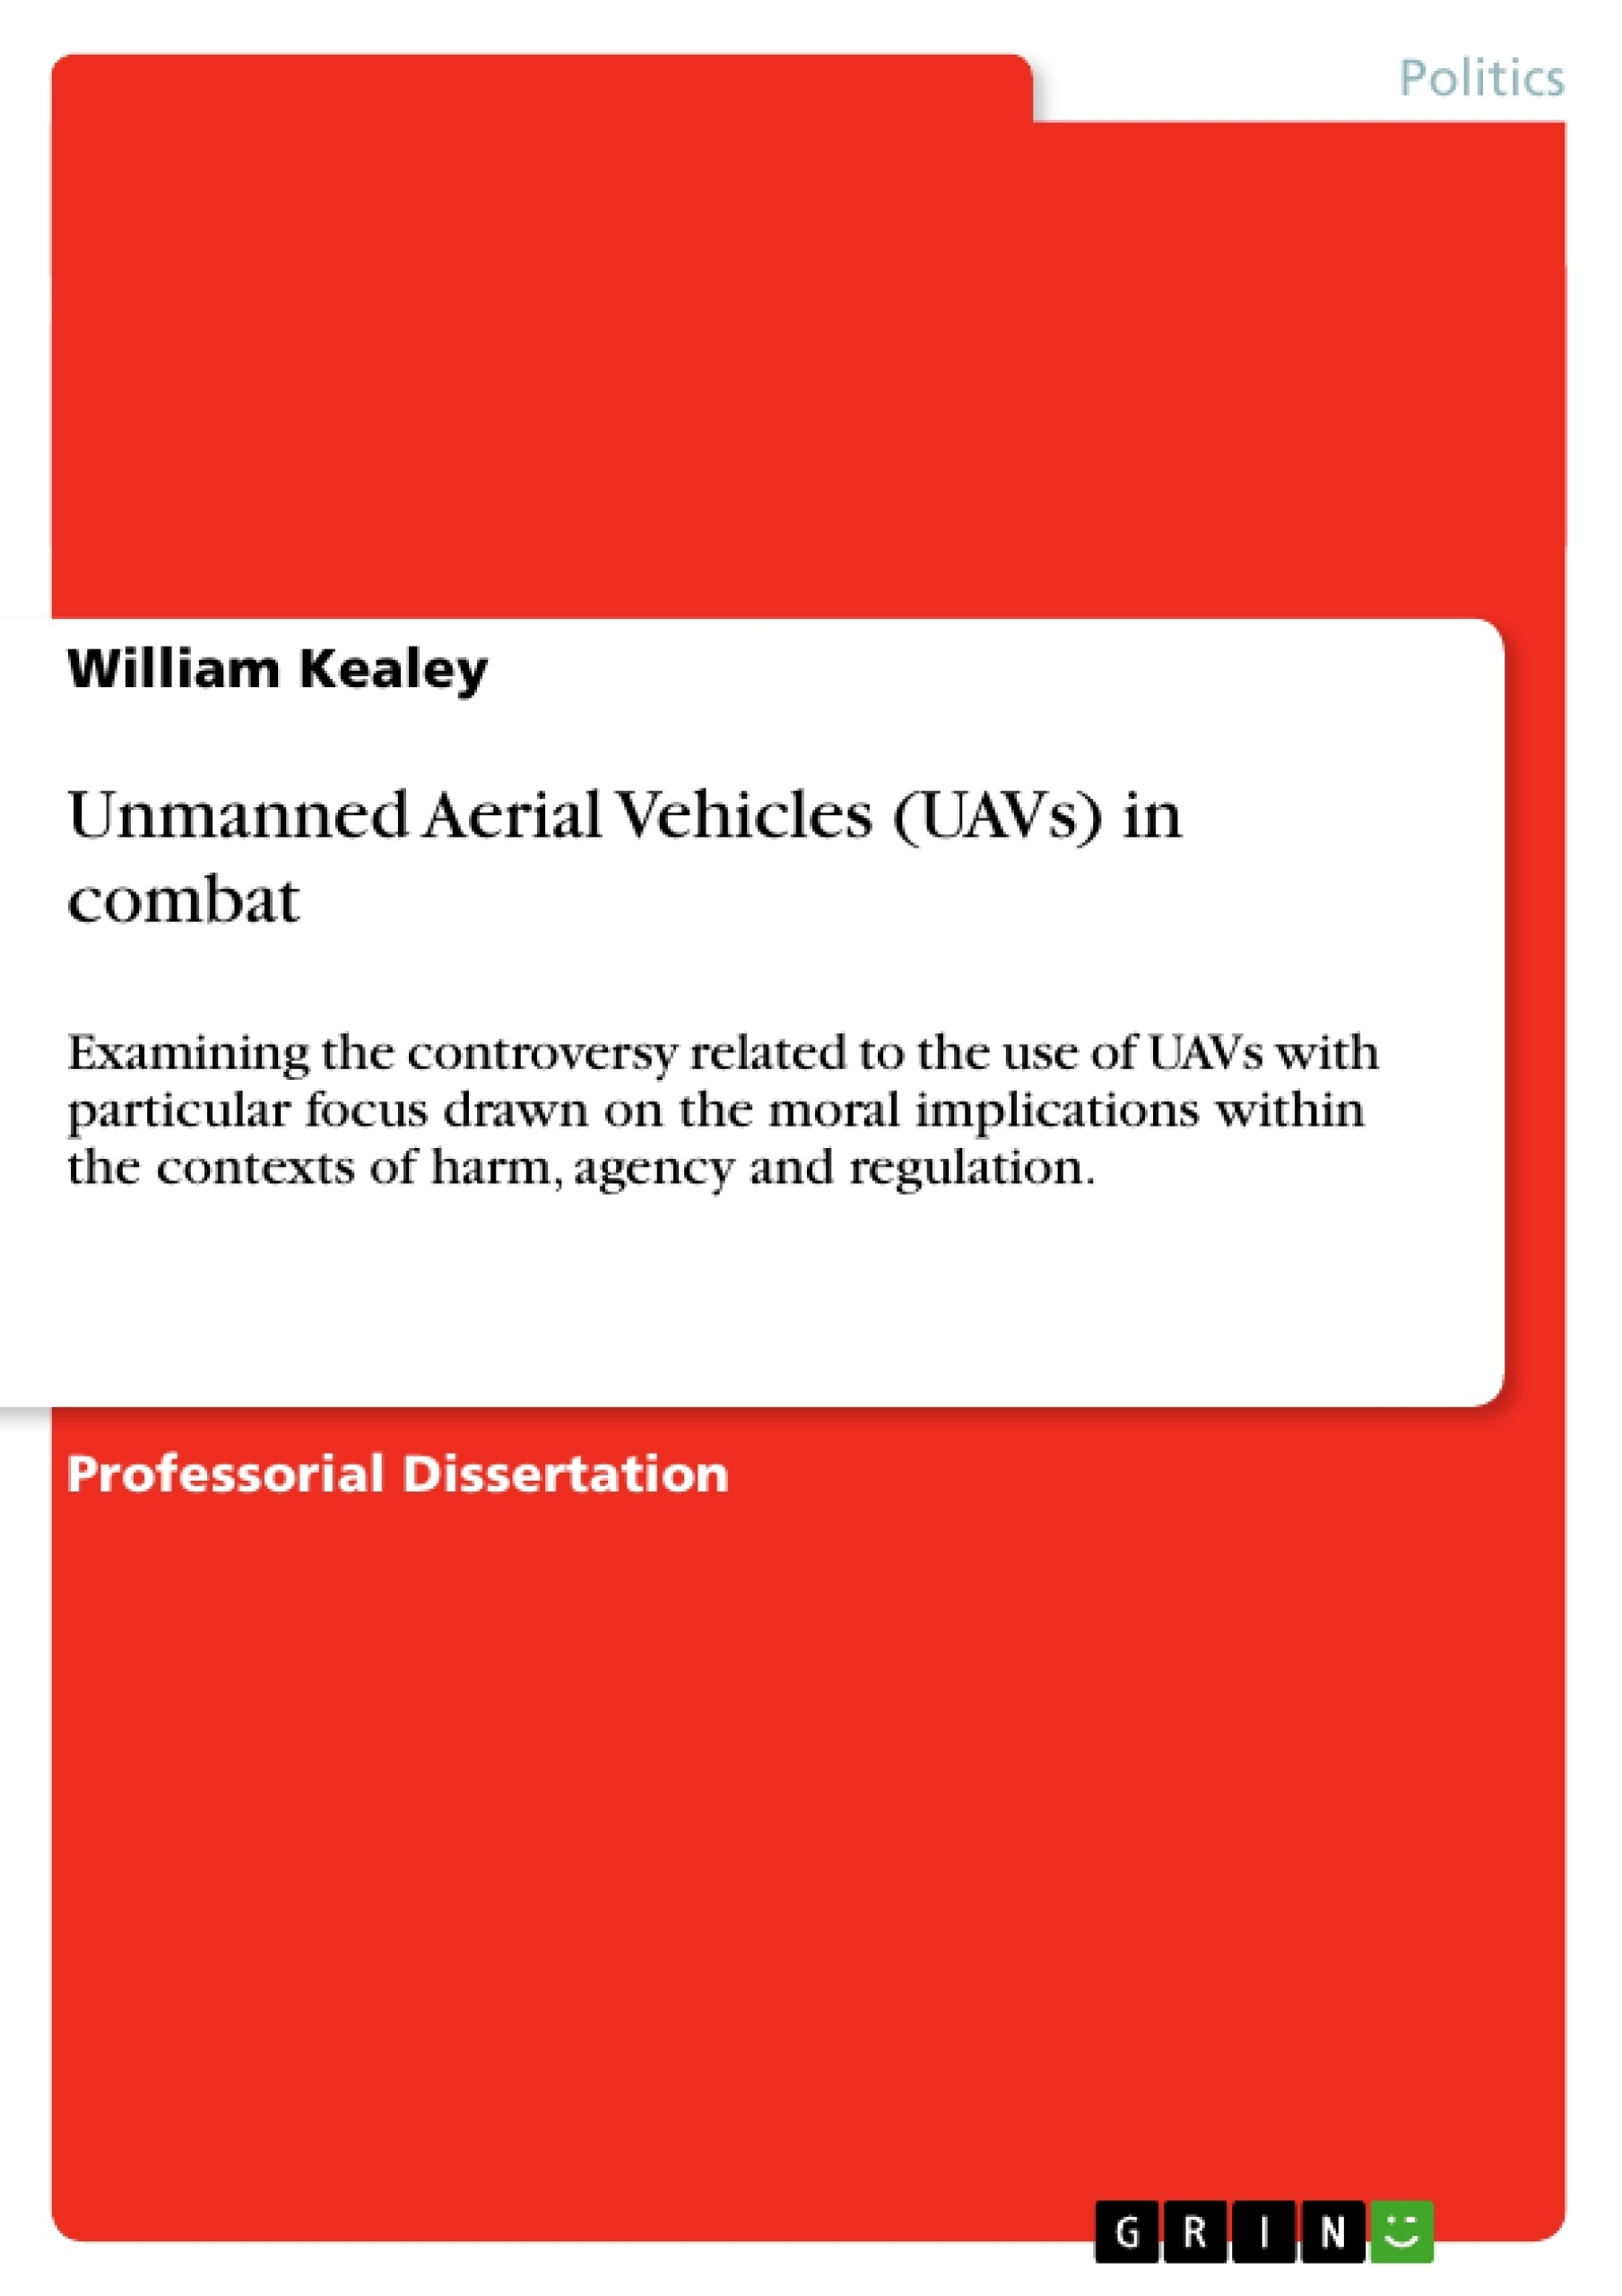 Title: Unmanned Aerial Vehicles (UAVs) in combat